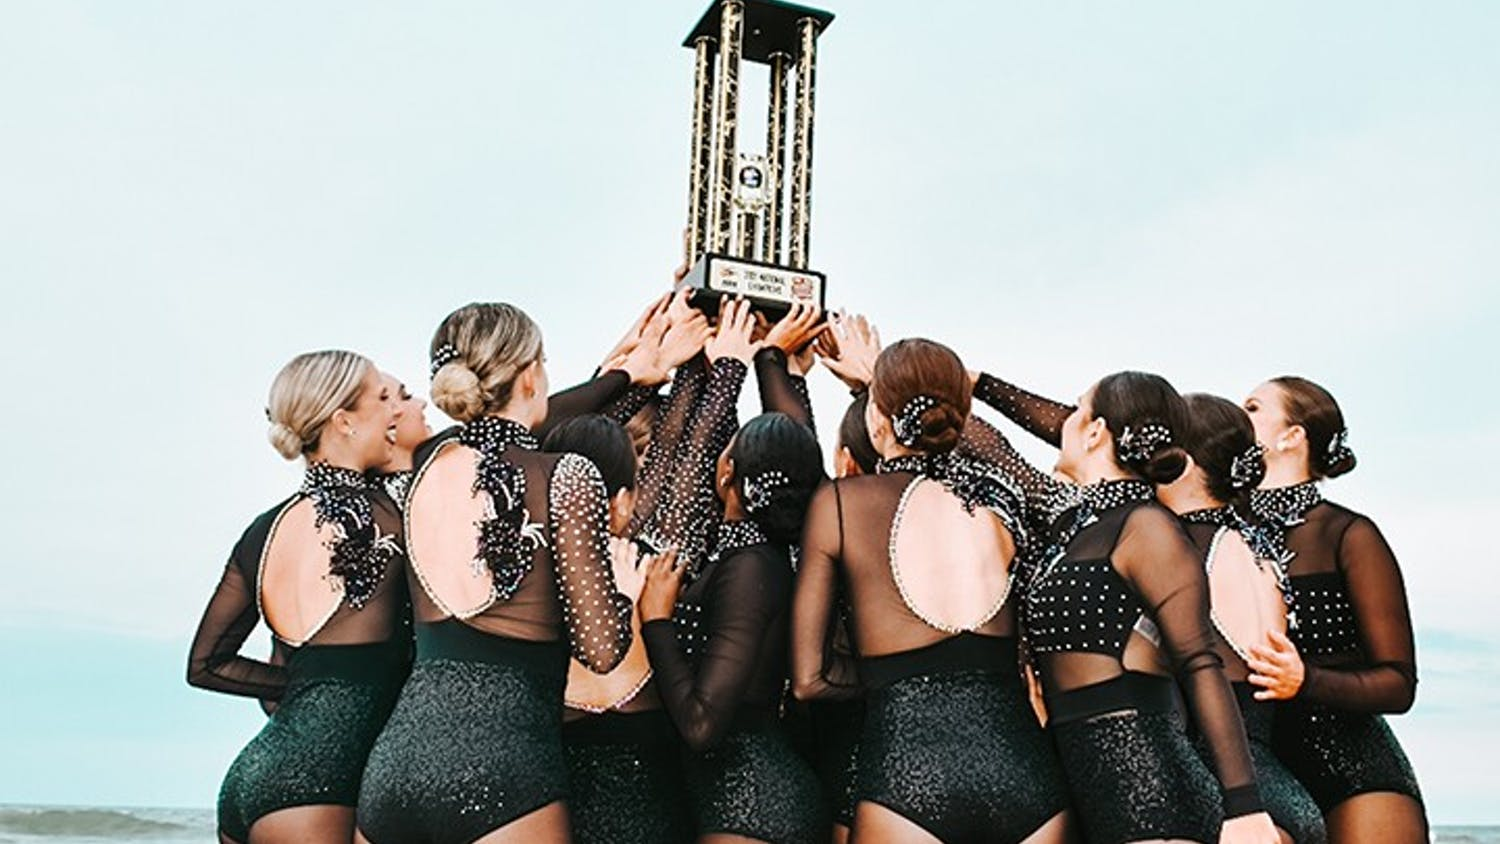 The Carolina Girls dance team posing with the National Championship trophy.